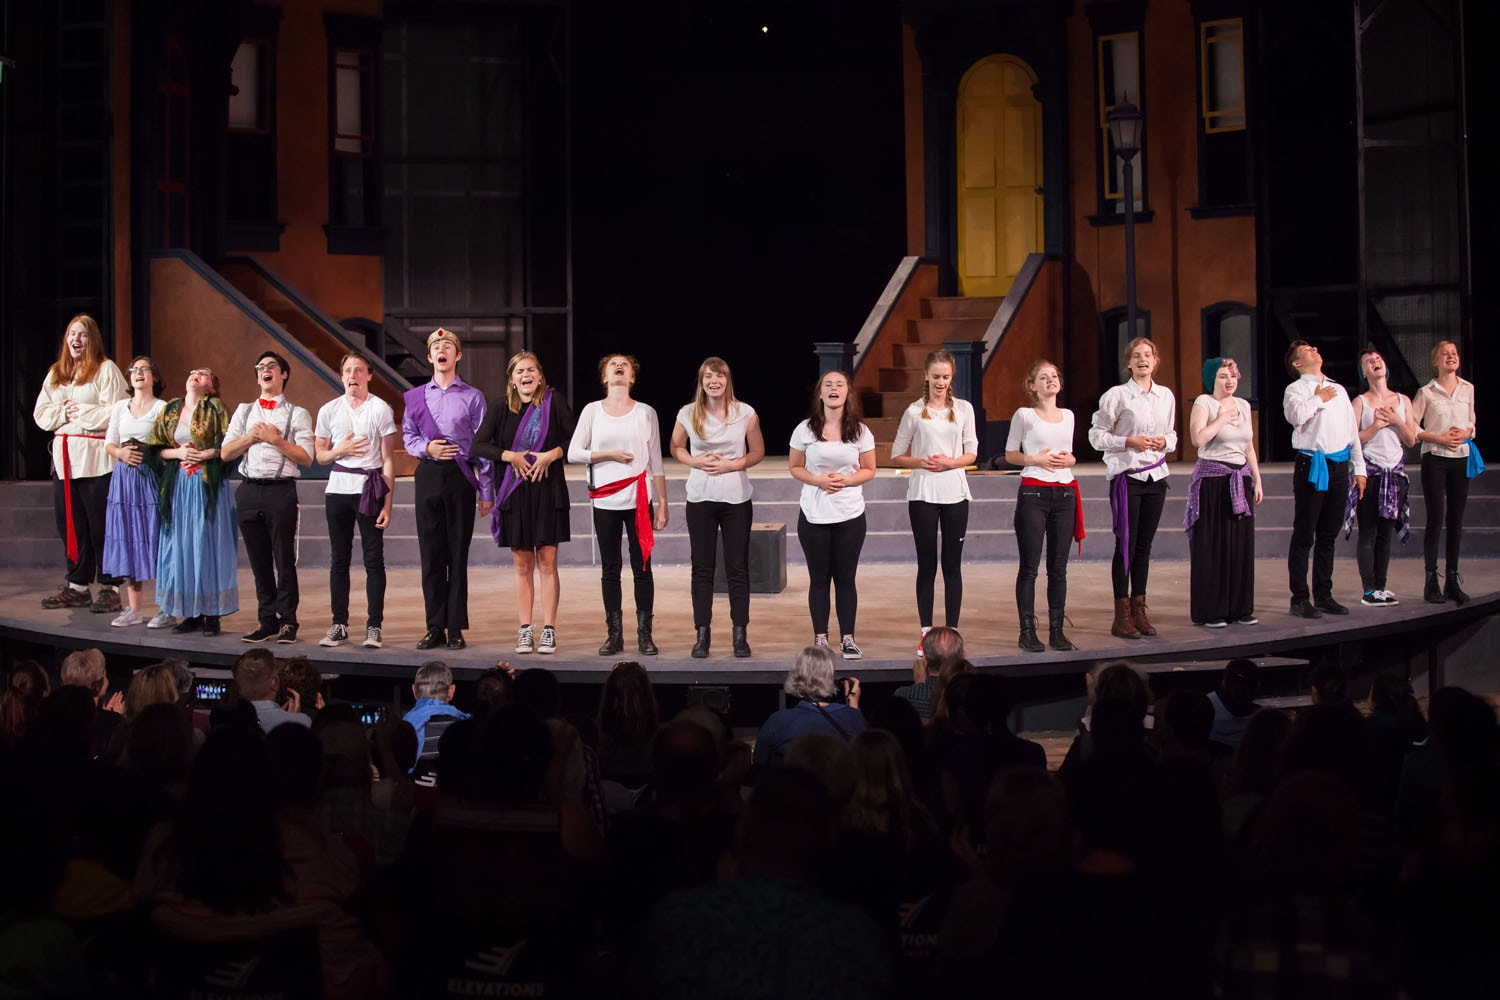 Students perform Kinsmen on stage